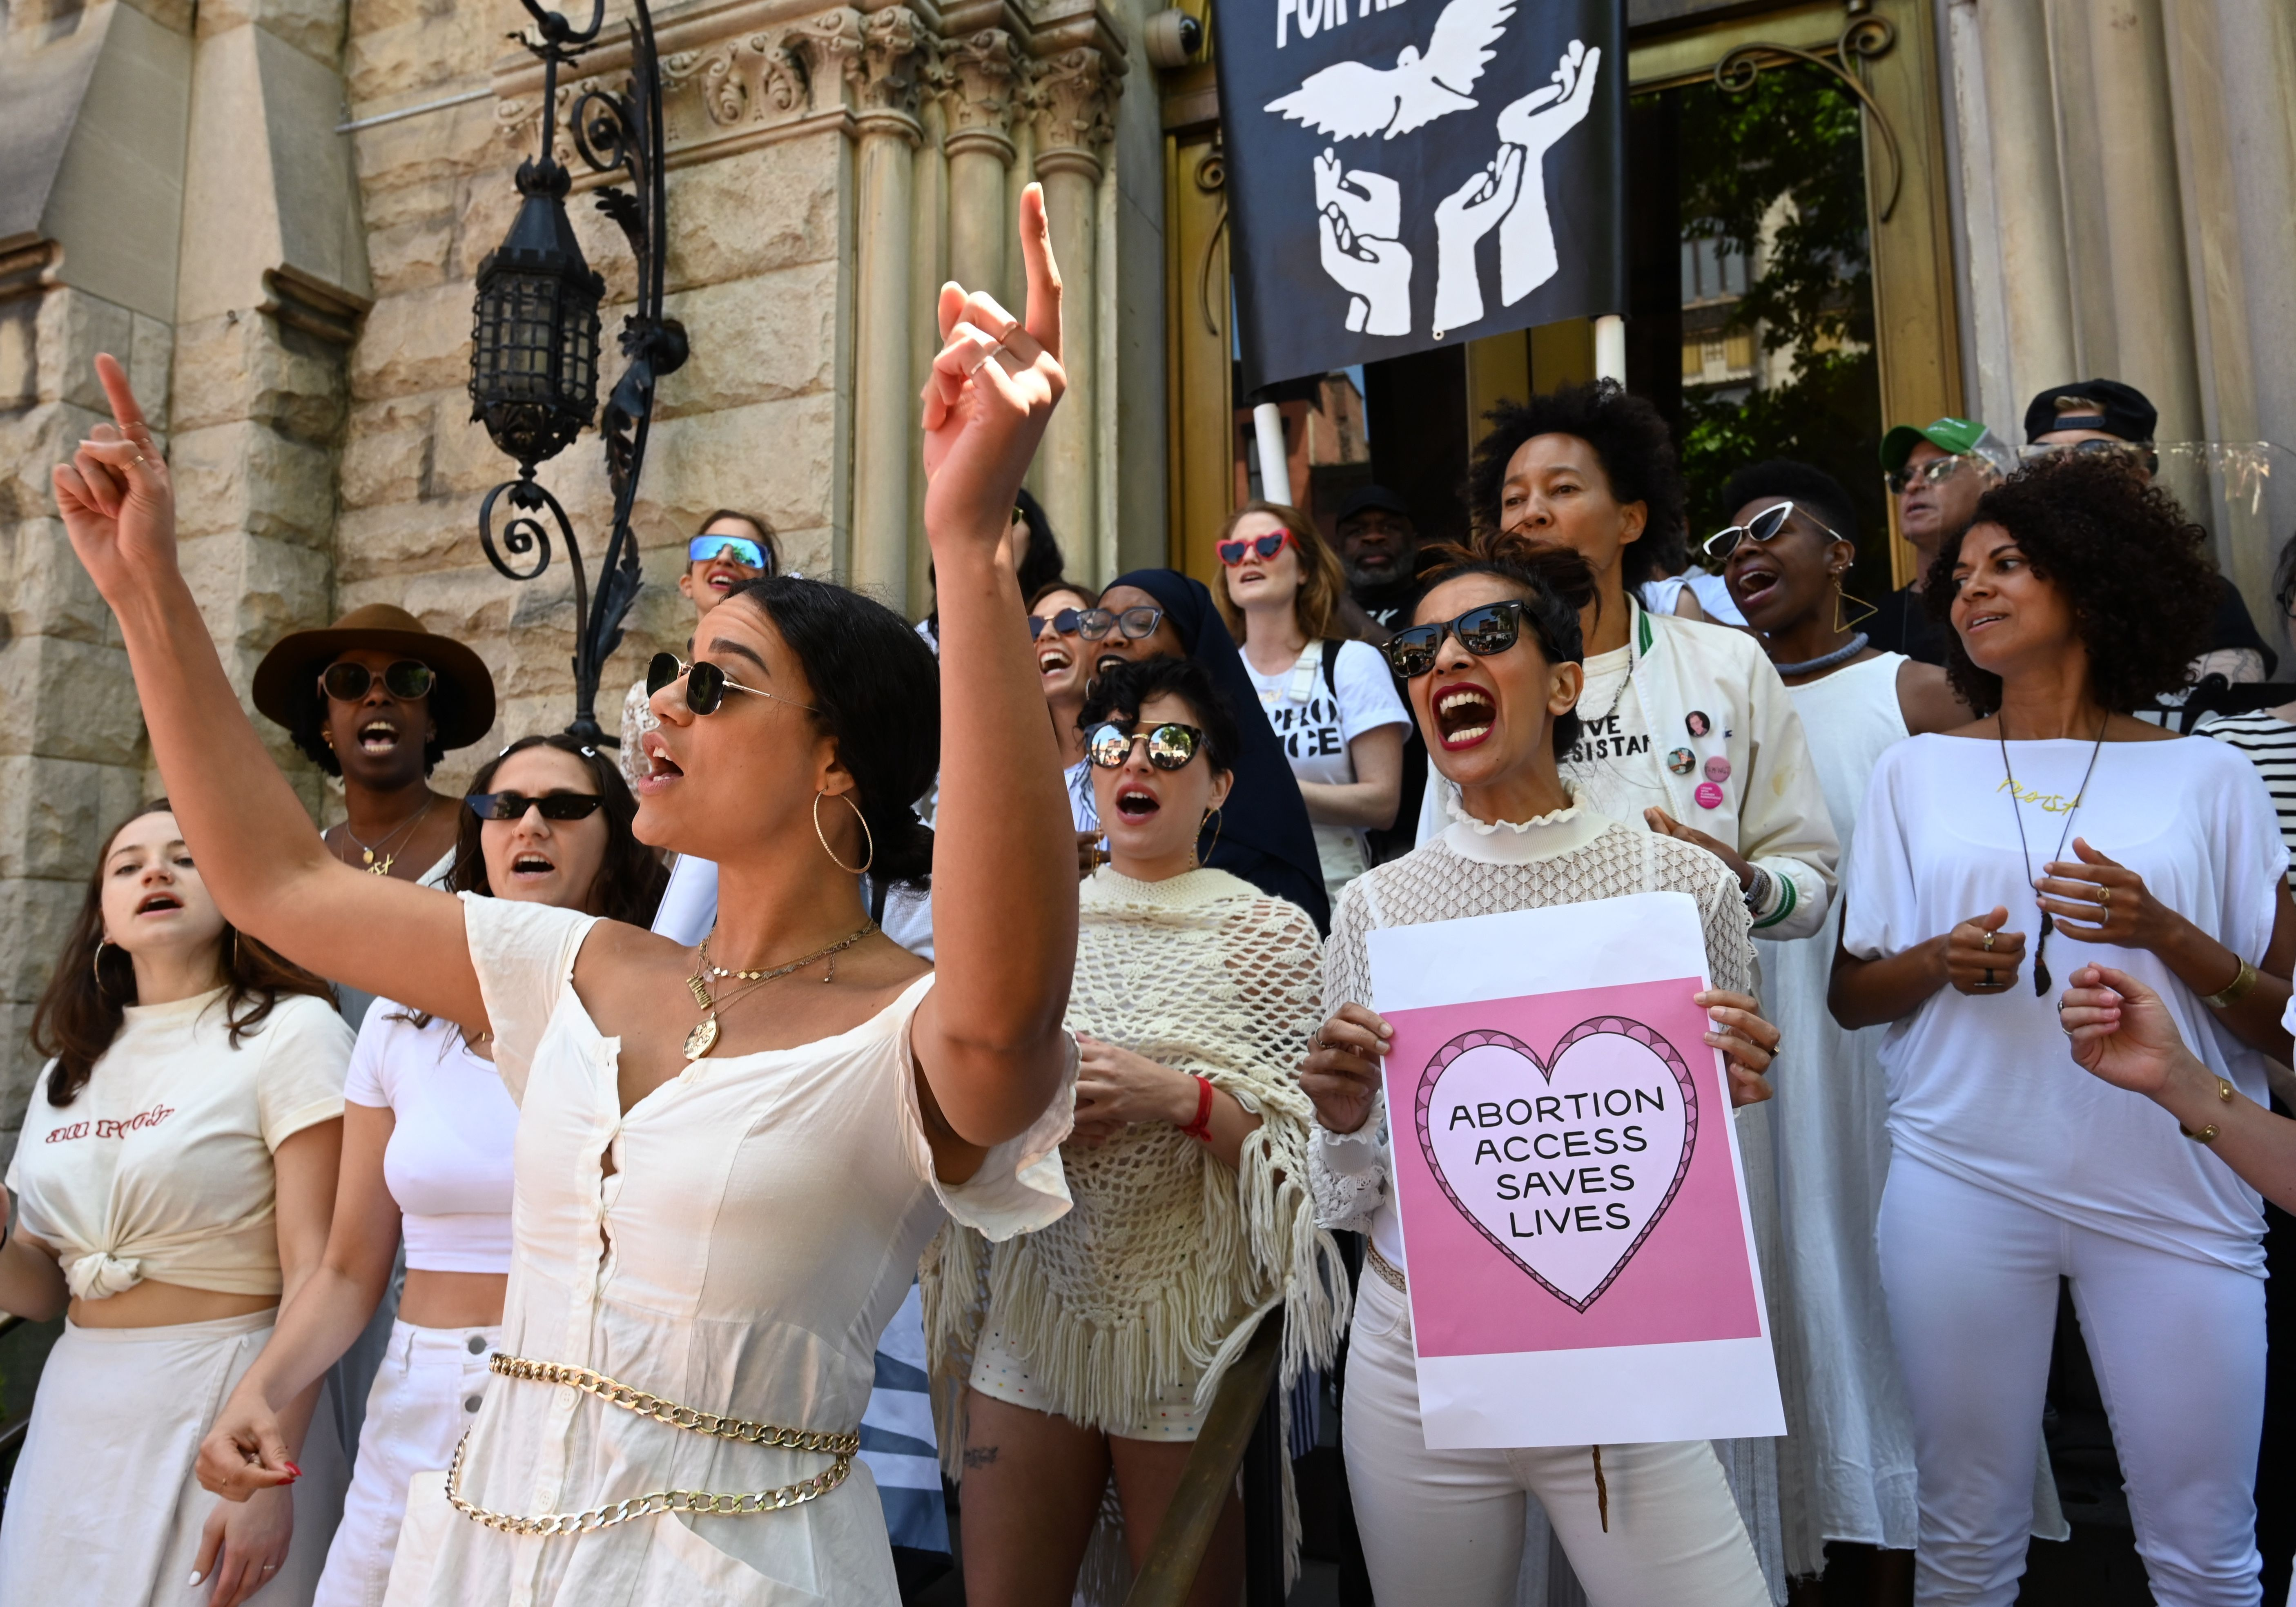 Women Seen at #StoptheBans Protests, Men Are Noticeably Absent